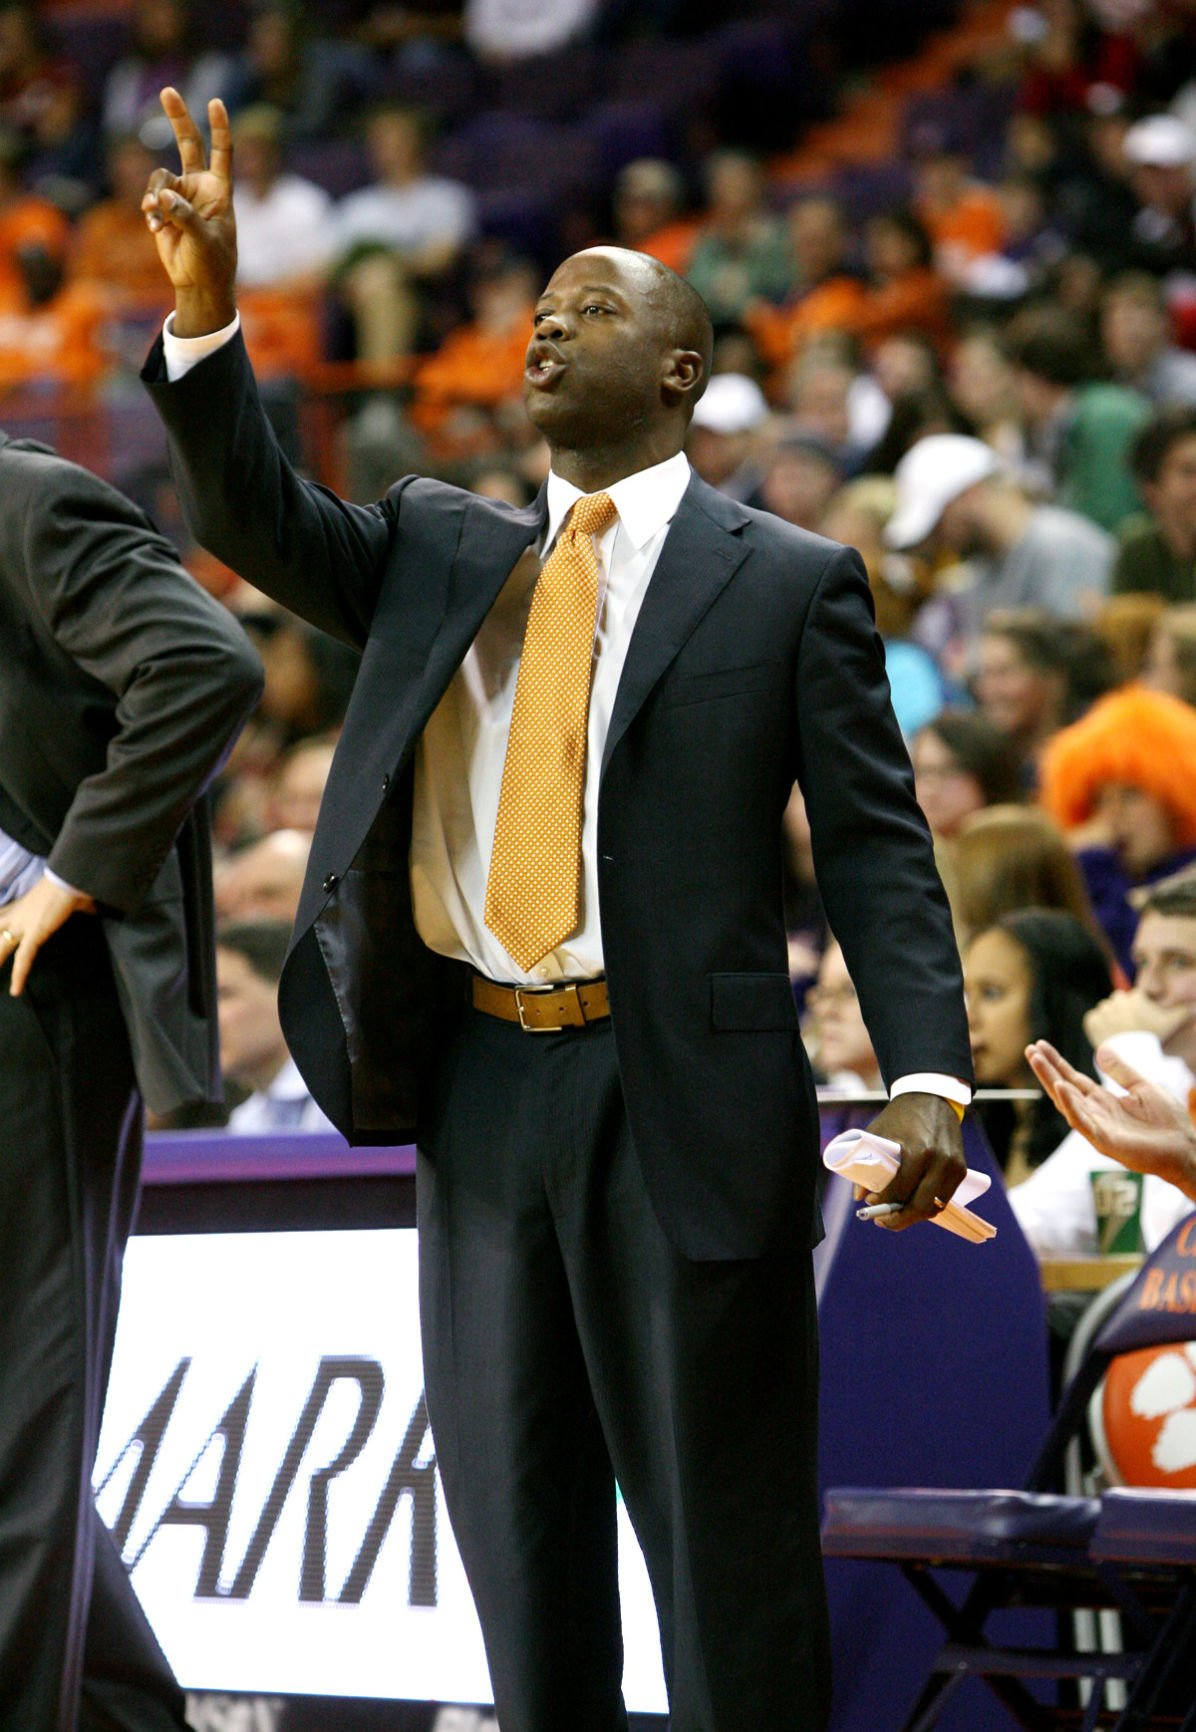 Grant, Lutz finalists for C of C basketball job